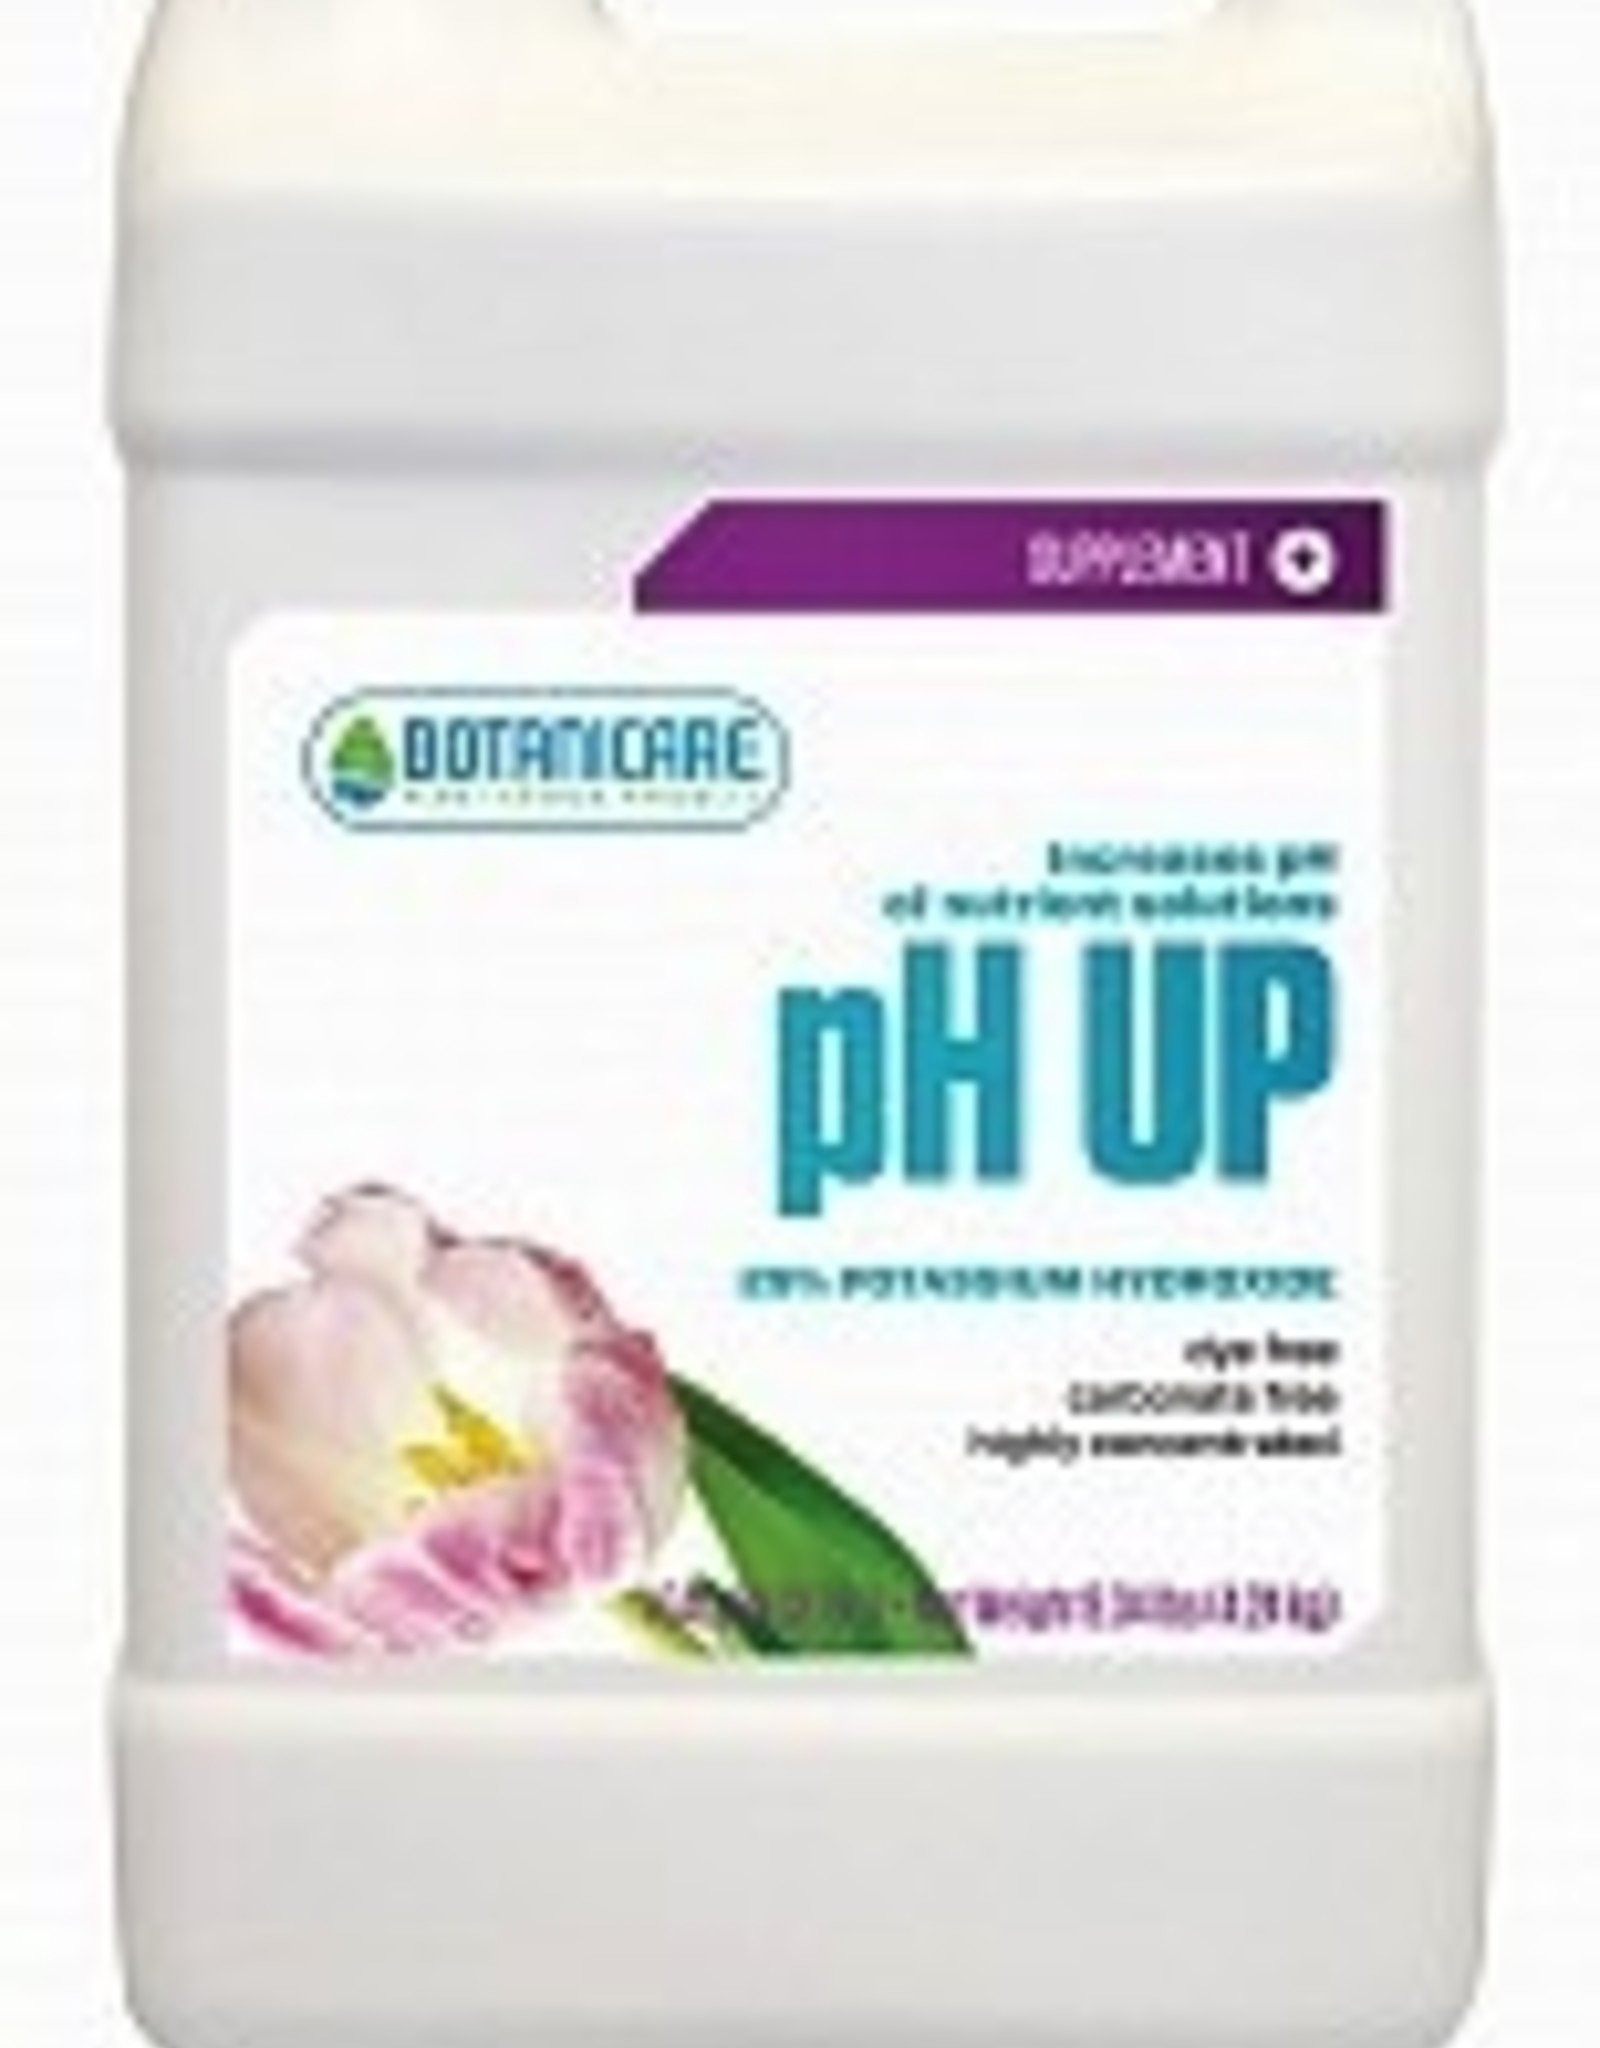 BOTANICARE Botanicare PH Up Ga